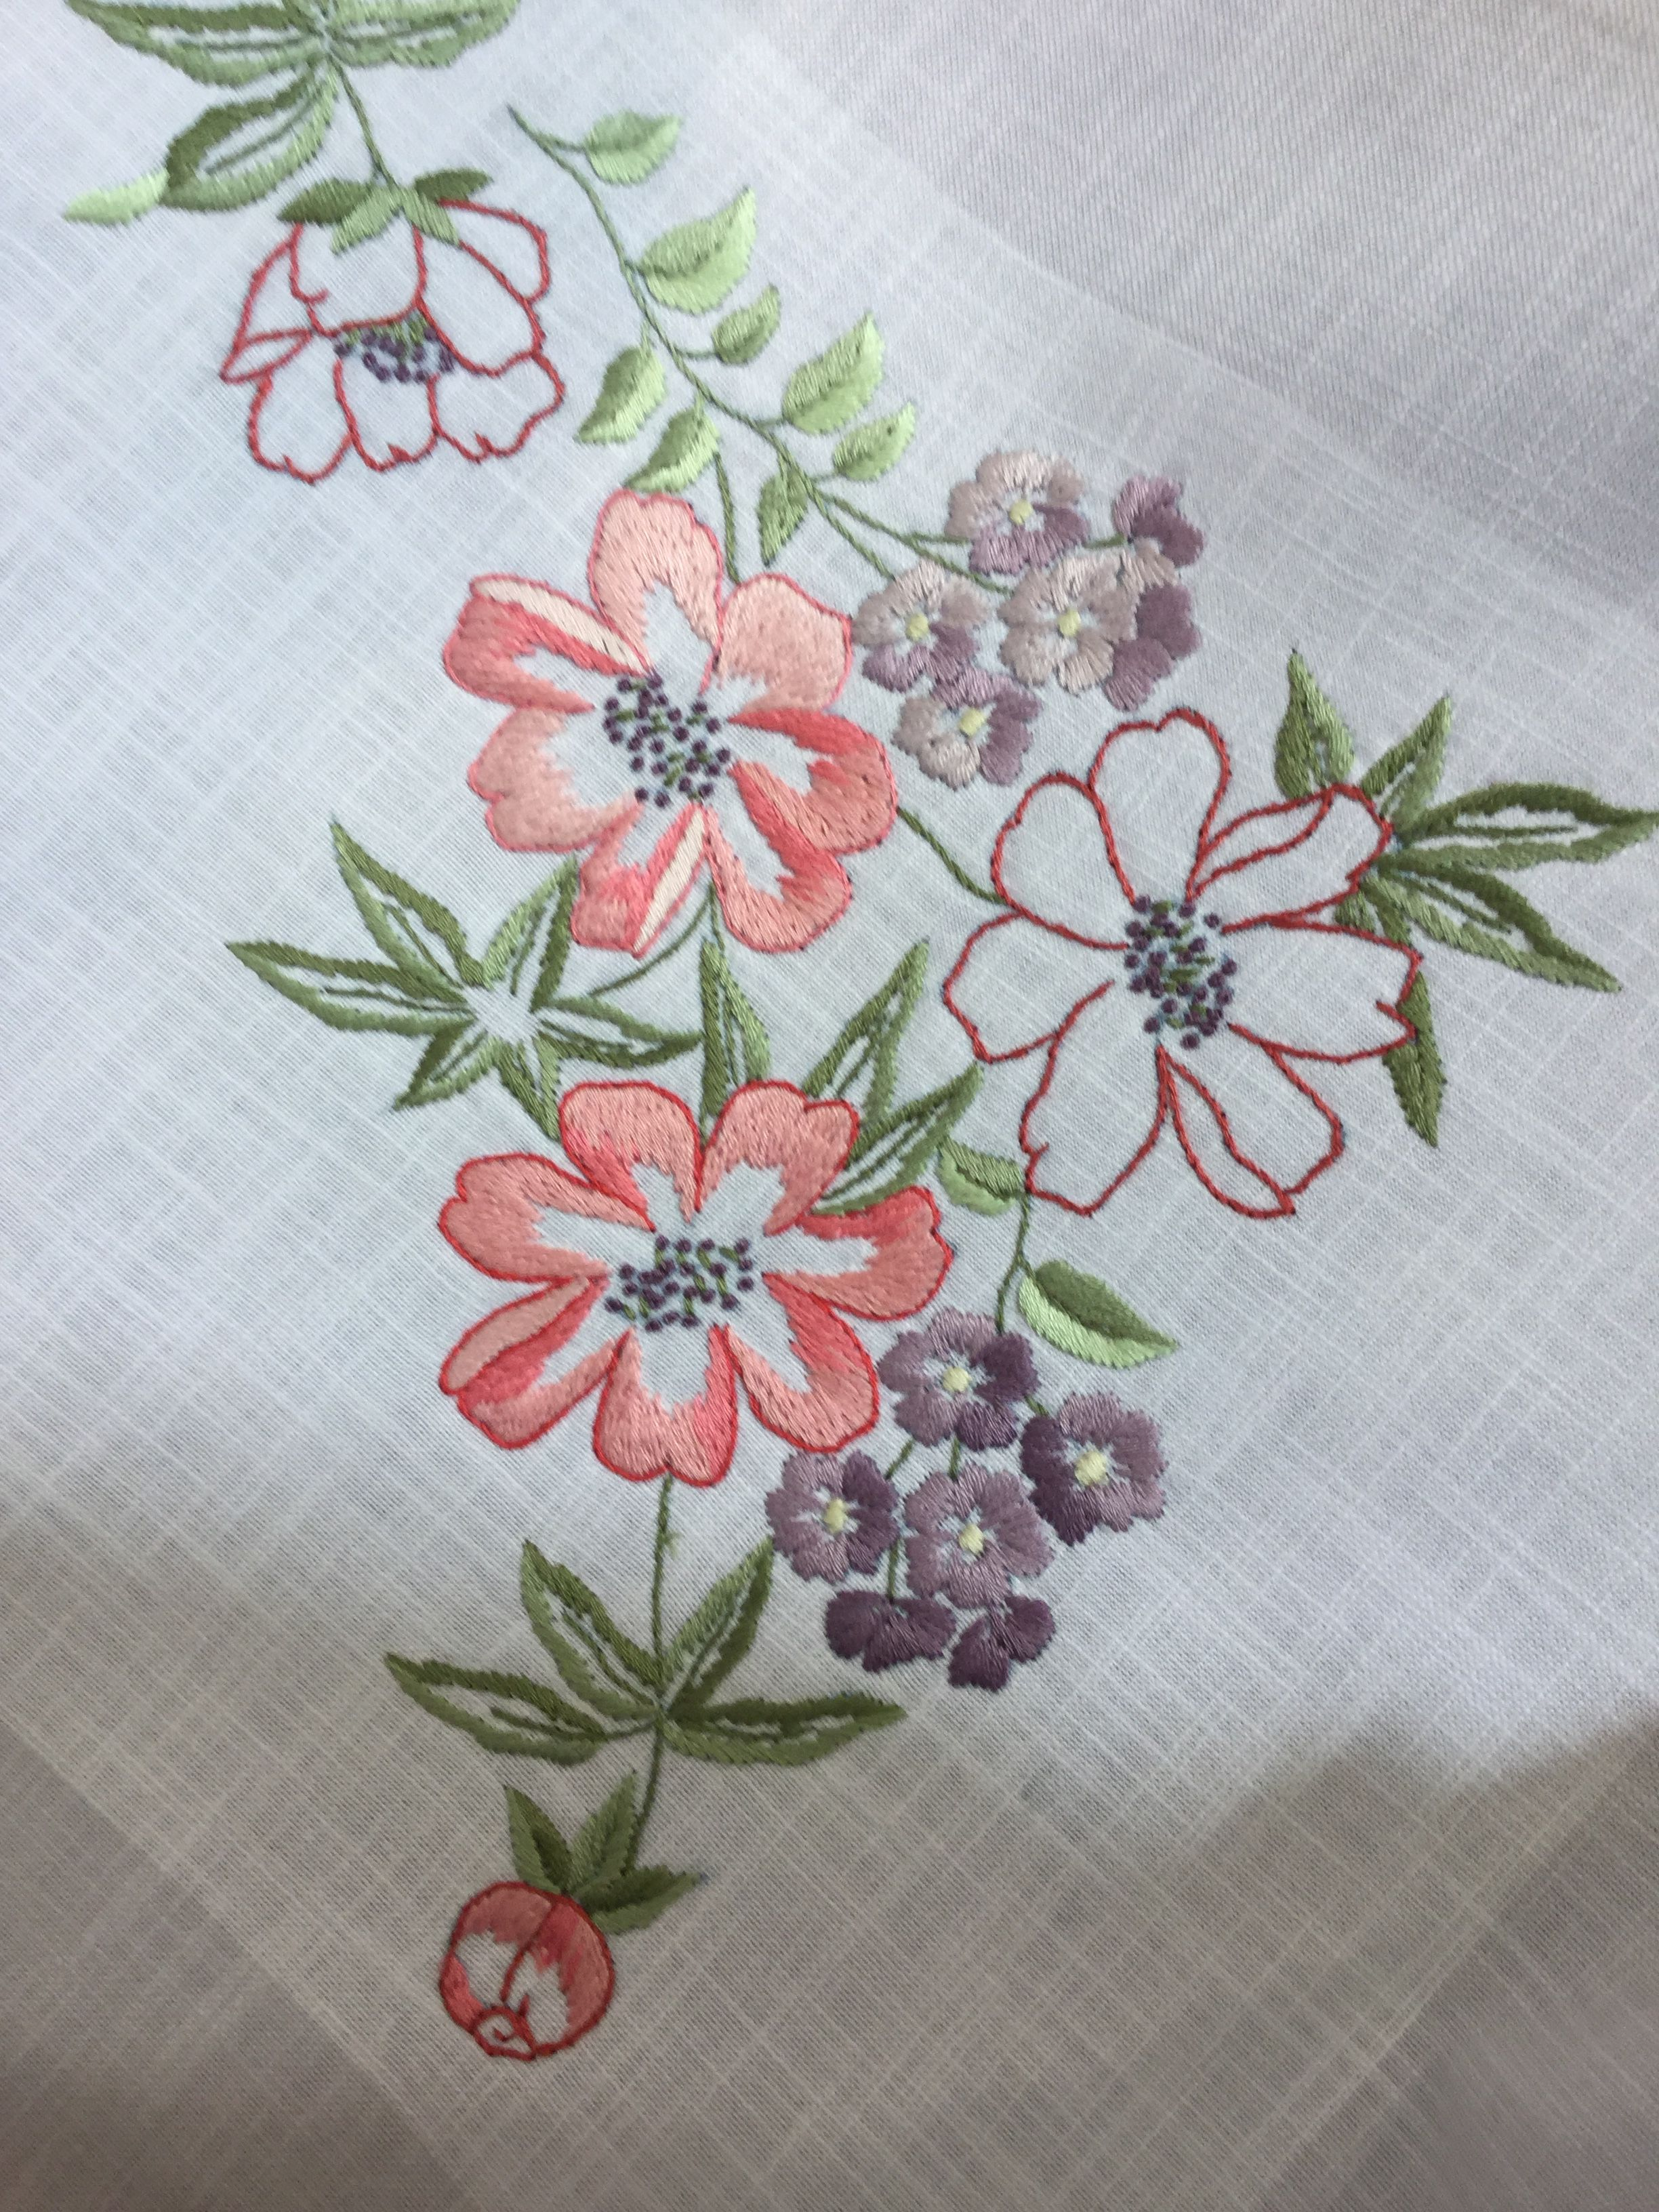 Outline embroidery designs for tablecloth - Machine Embroidery Designs Hand Embroidery Cotton Grounds Embroidery Wool Work Embroidery Drawings